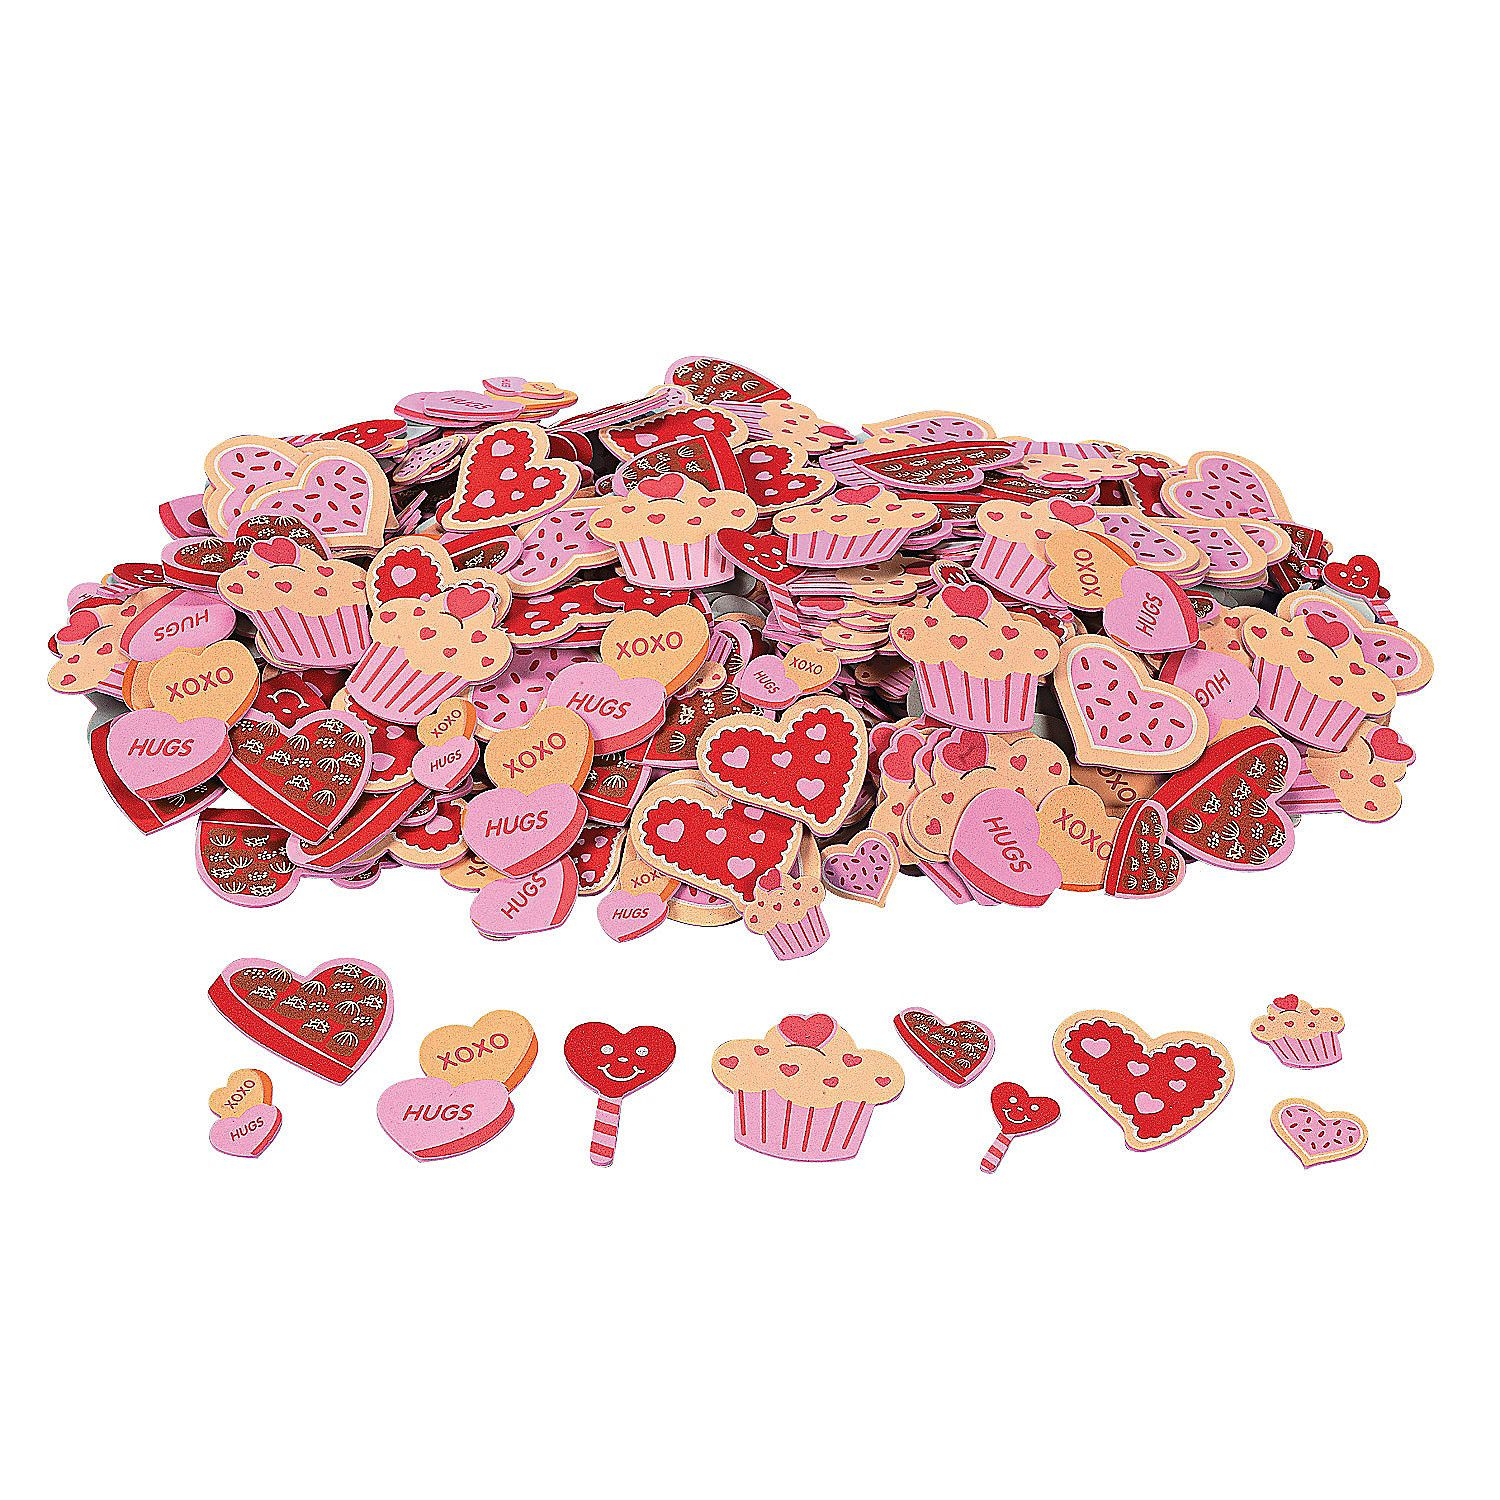 Valentines Day Regular Love Bug Adhesive Foam Shapes for Valentines Day 500 Pieces Fun Express Craft Supplies Foam Shapes